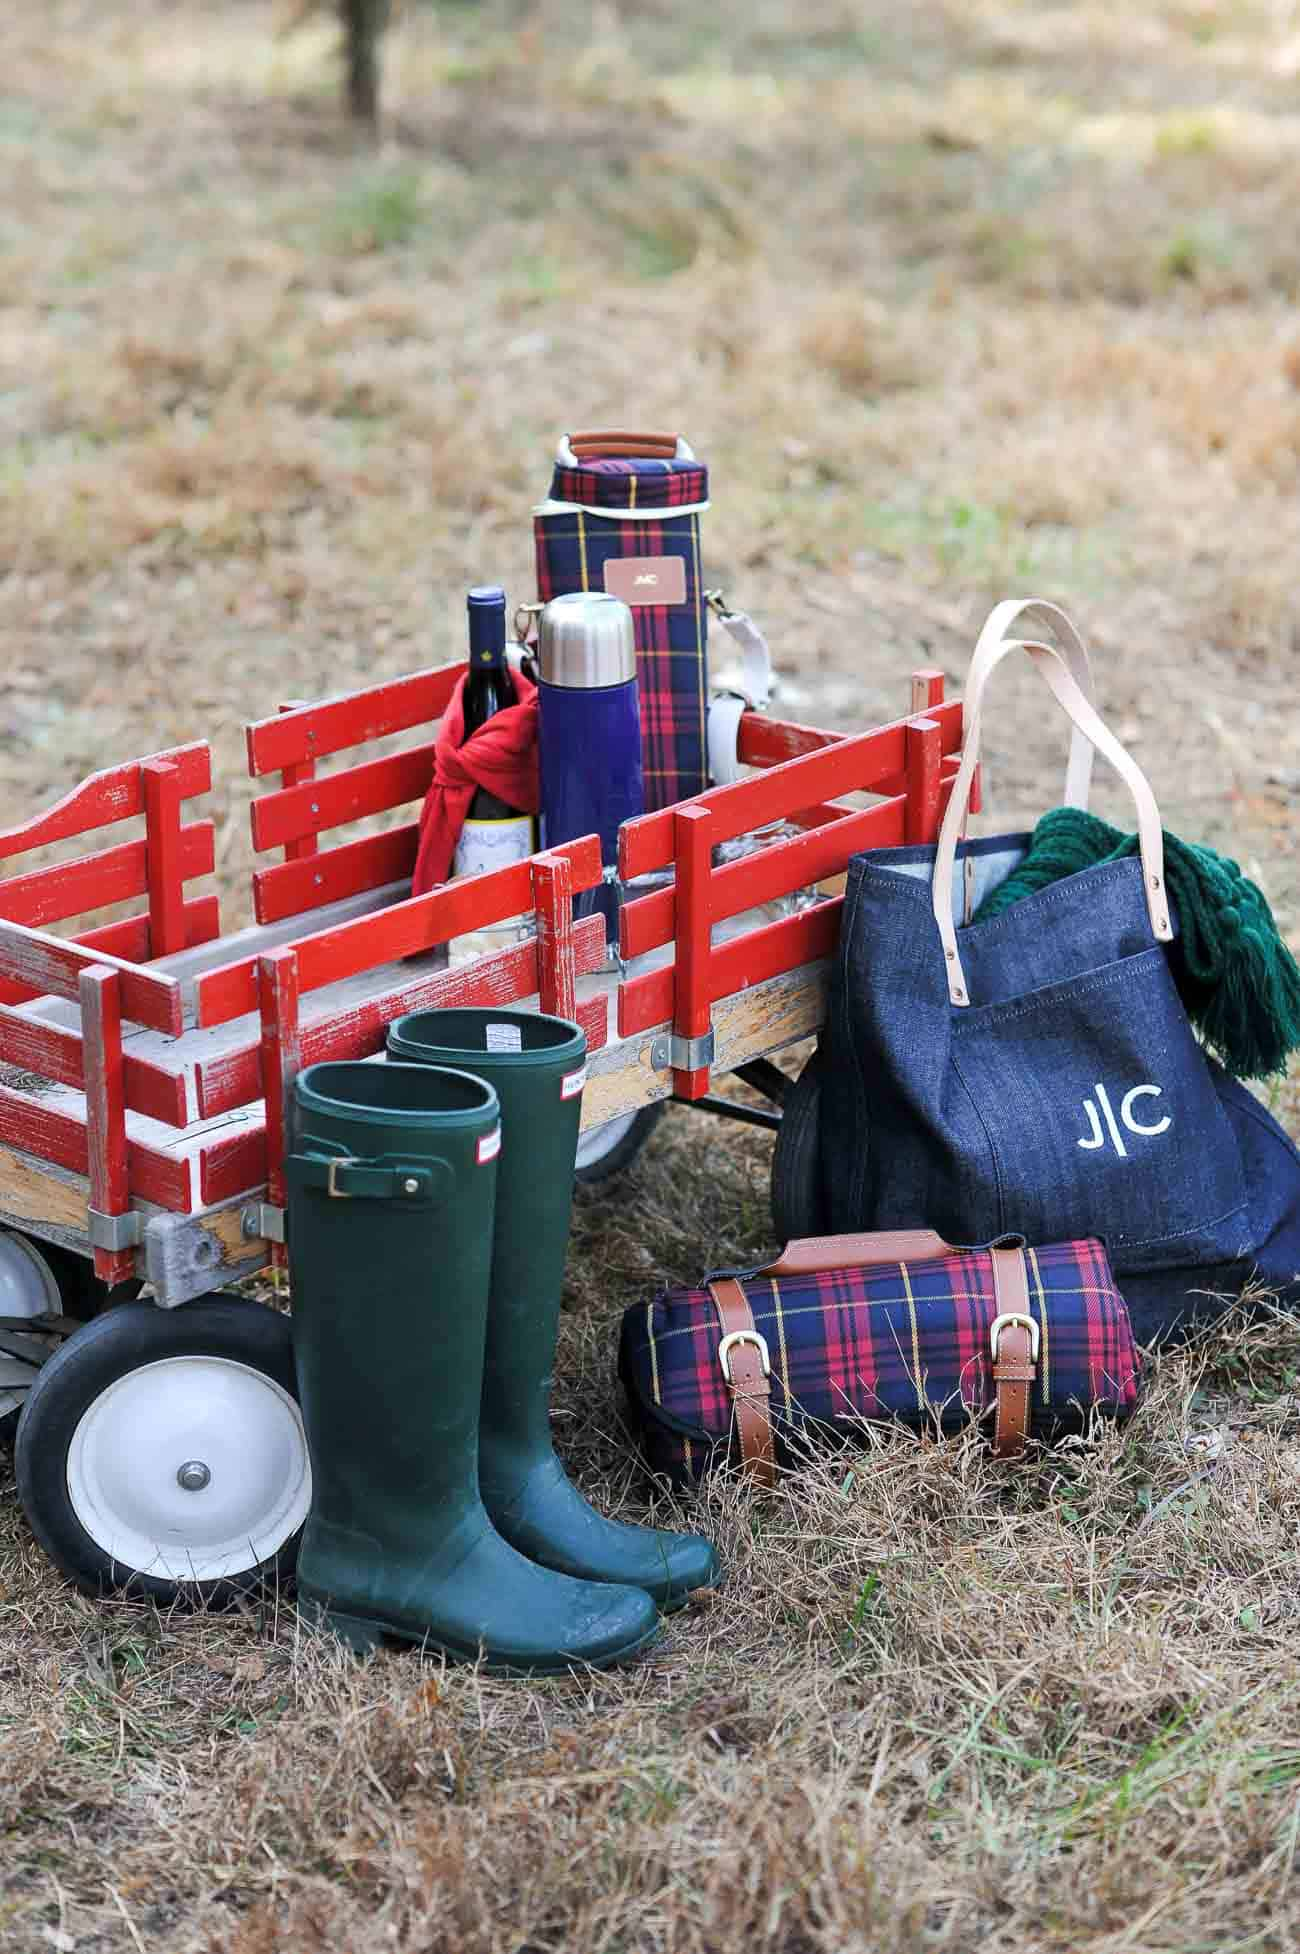 Christmas tree farm, winter picnic, fall photo ideas, Hunter boots and plaid - My Style Vita @mystylevita